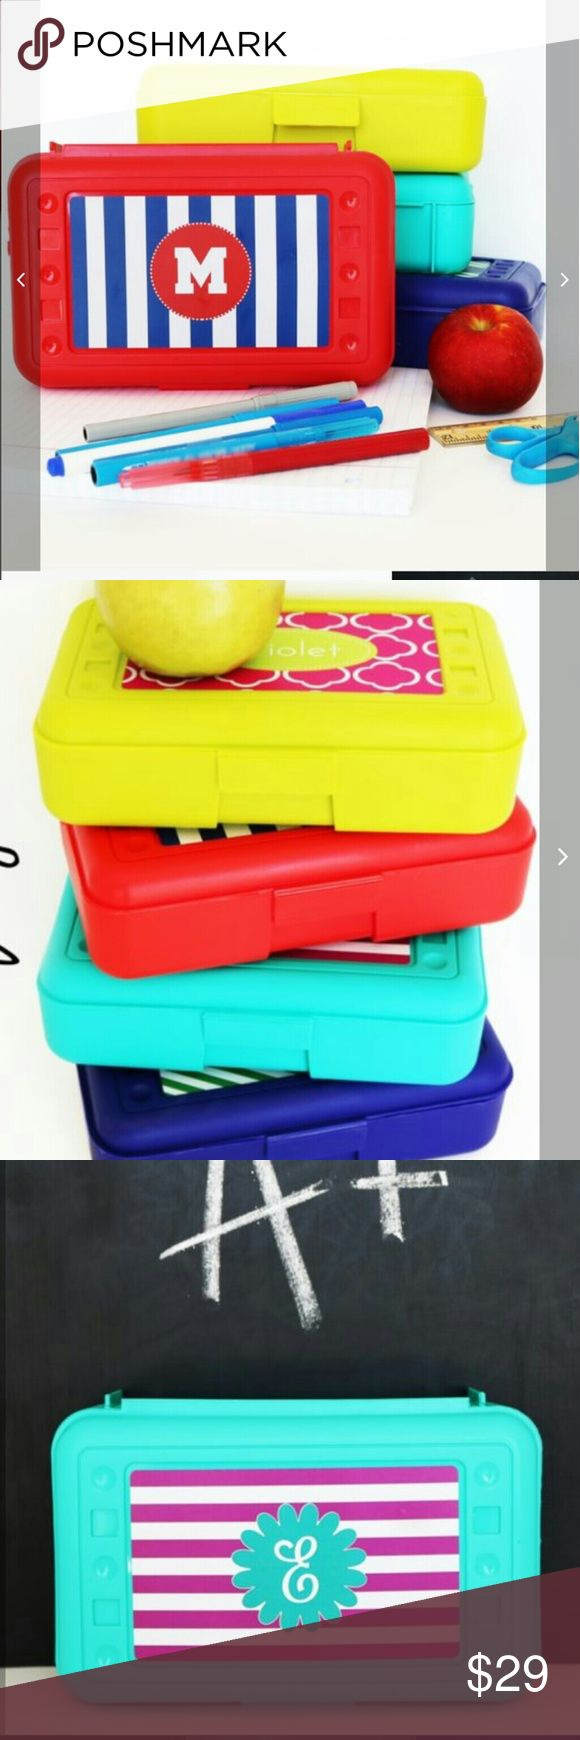 Personalized Back to School – Pencil Boxes Back to School – Pencil Boxes – Personalized  Stand out at school with your customized personalized pencil box! Great for pencils, pens and school supplies, art supplies or any other small personal items. Also makes a great way to organize craft project supplies. You will be the most stylish kid in class with this personalized art box! Choose from a variety of patterns, colors, and fonts!  ***All name will be in the color white*** 8″ x 4.5″ x 2.75″…